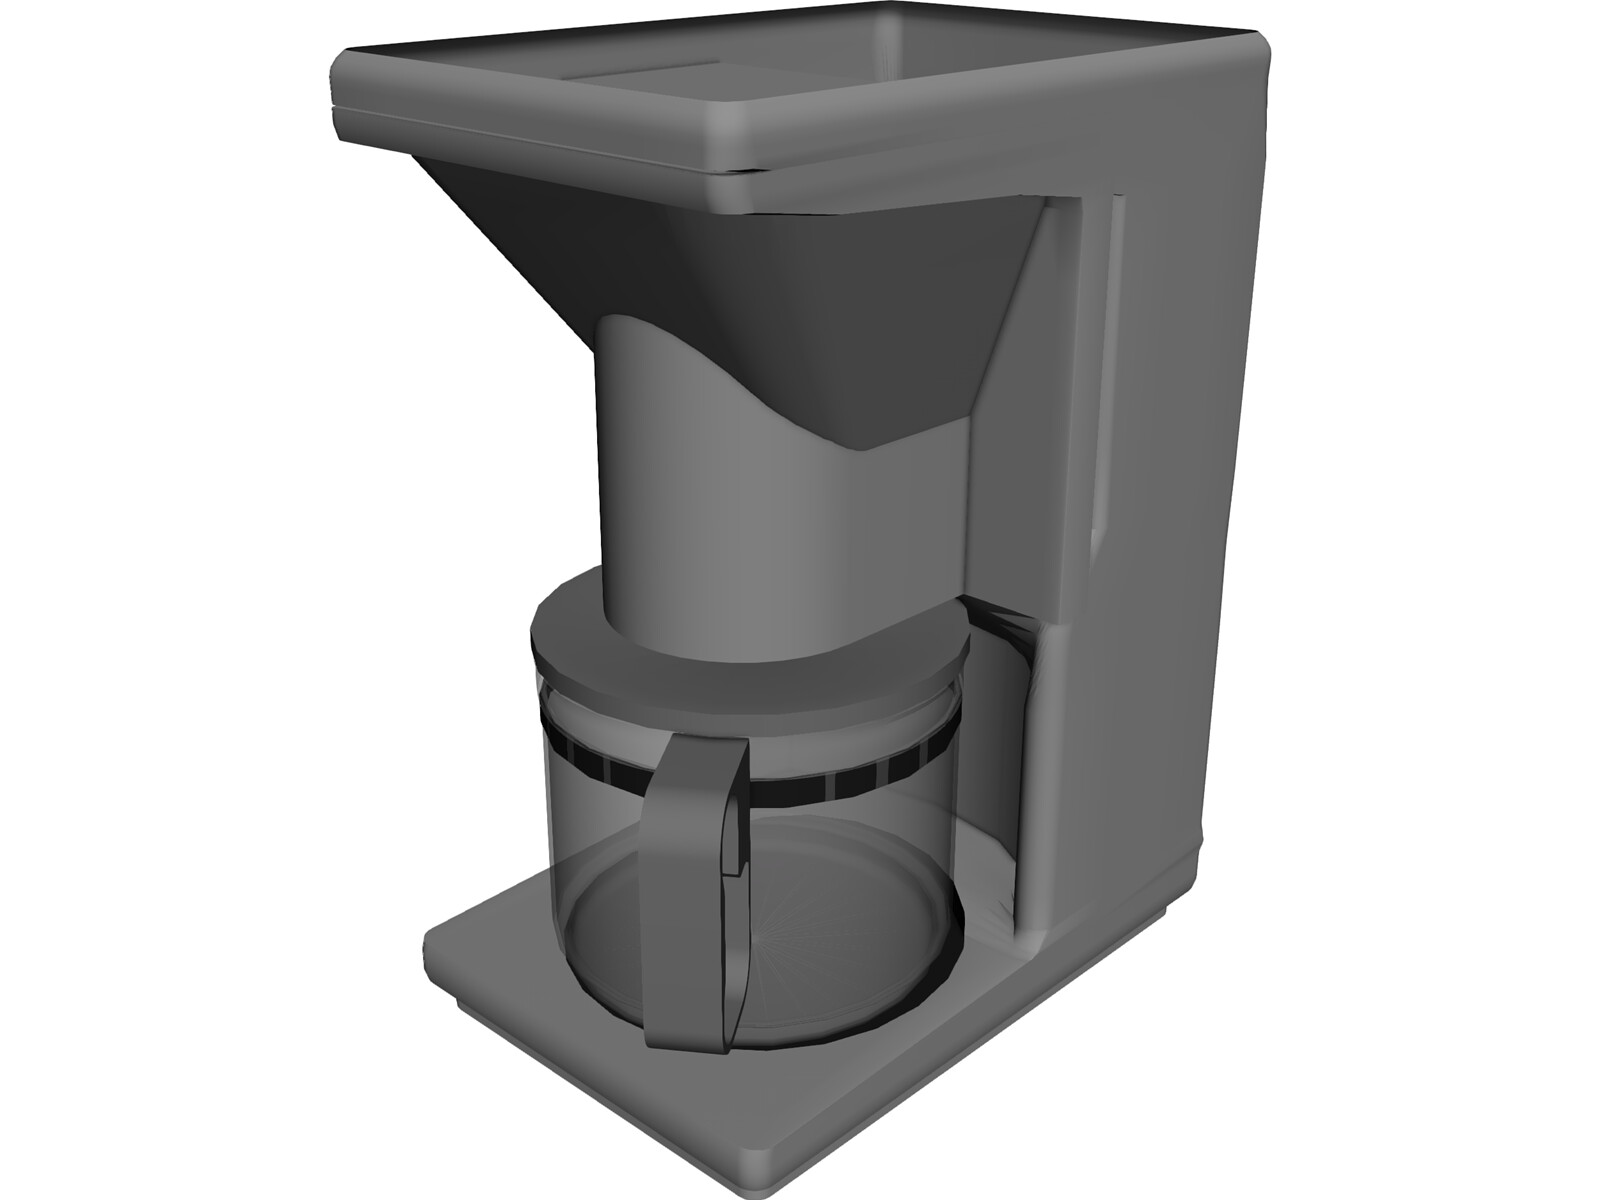 Coffee Maker 3d Model 3d Cad Browser